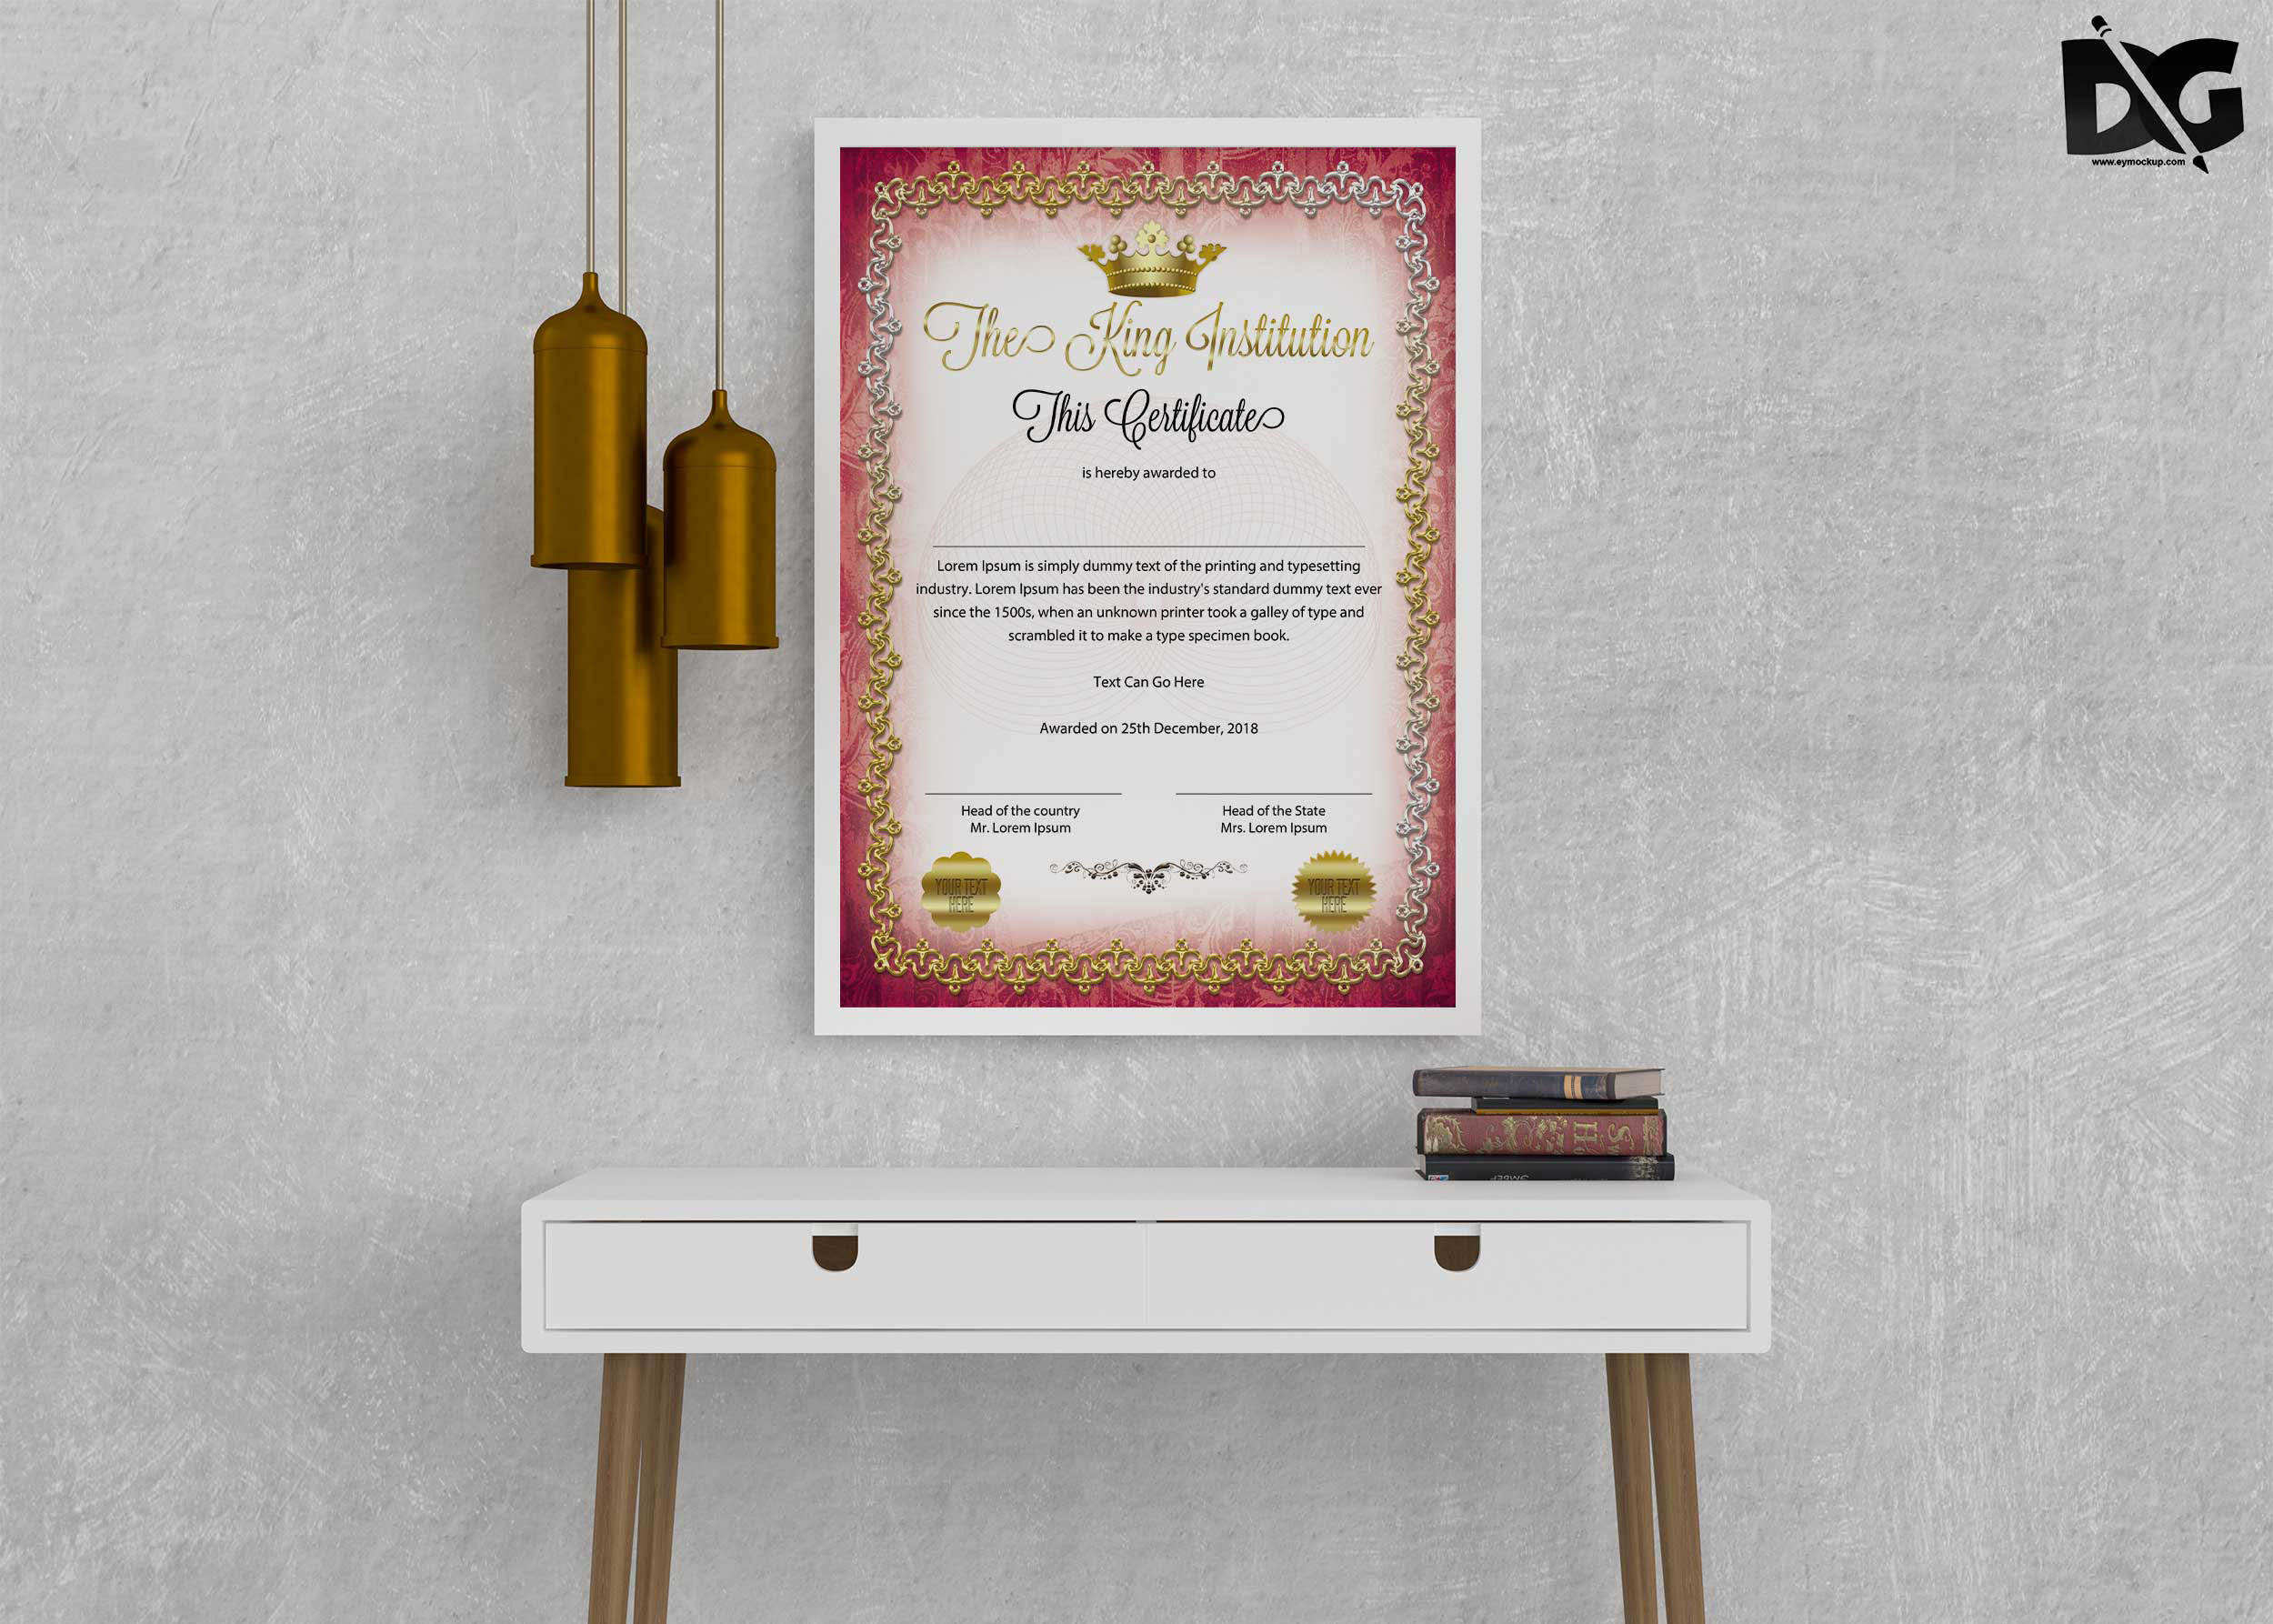 Free Royal Institute Certificate Psd Template Free Psd Mockup